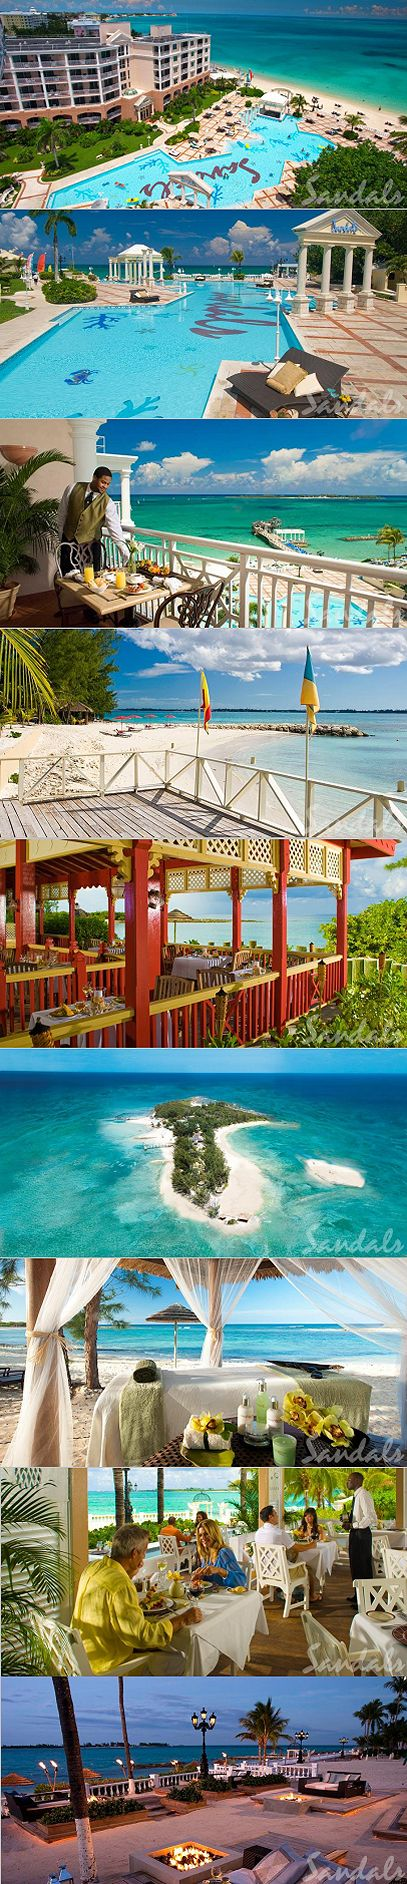 The Best Caribbean All Inclusive Resorts Couples |Sandals Royal Bahamian. This might be the one!